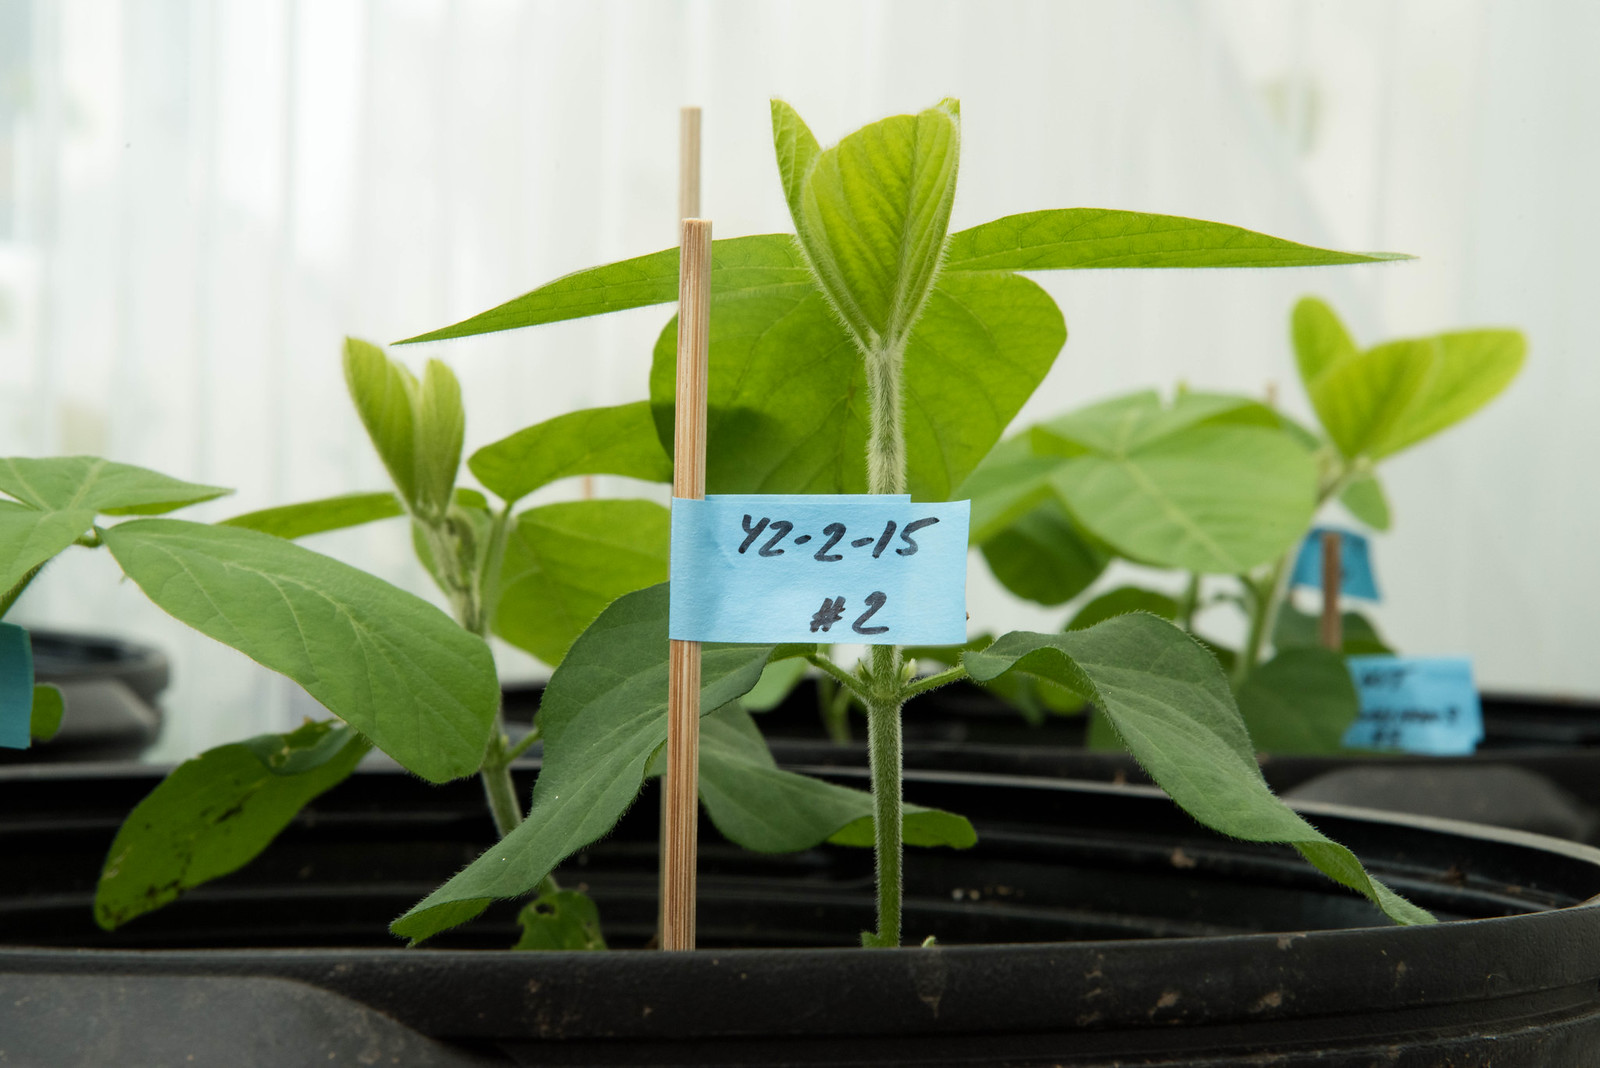 Thelen's soybean plants